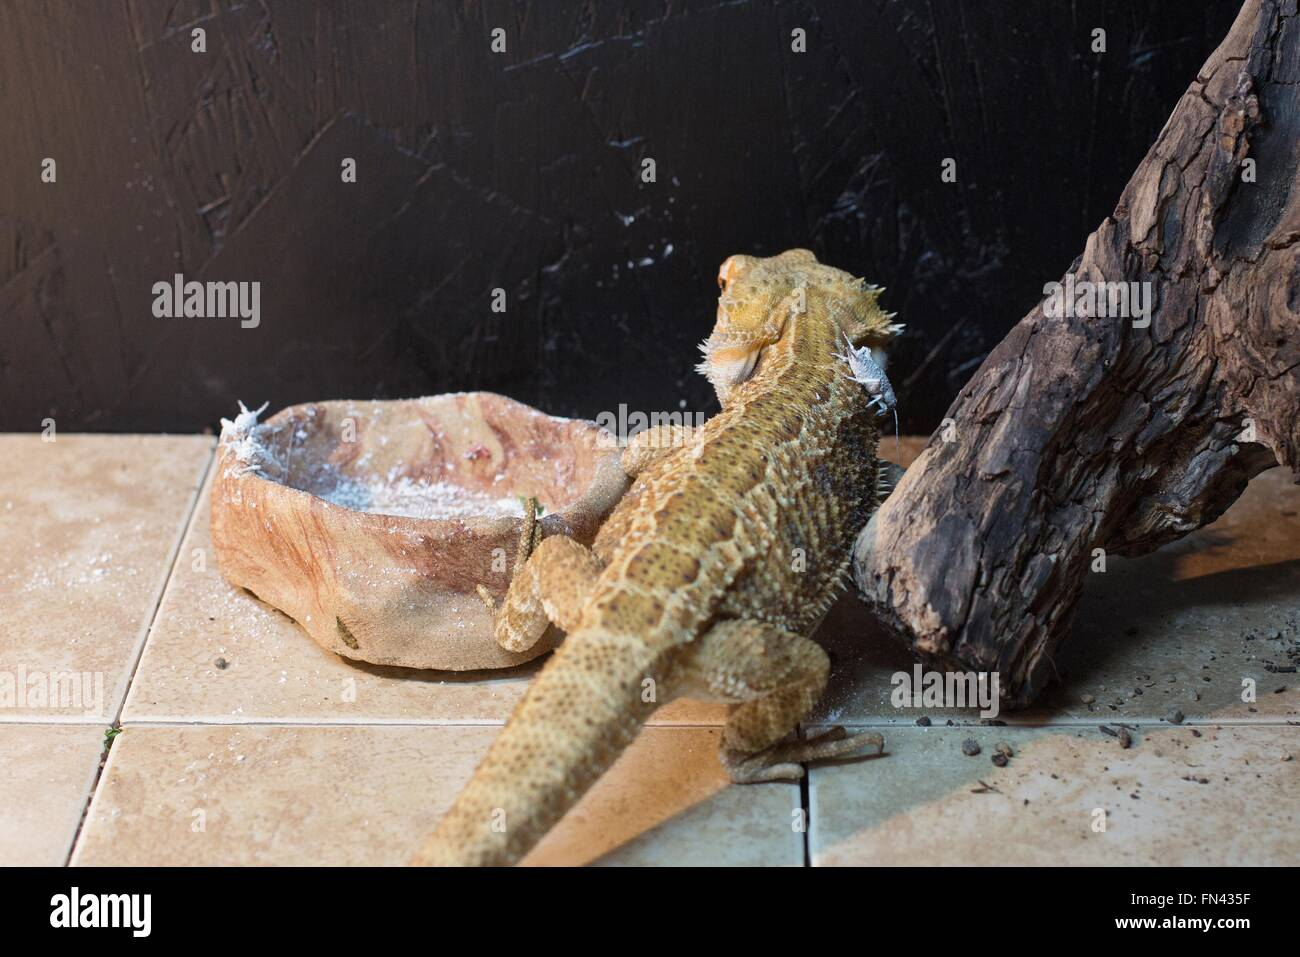 Lizard Cage Stock Photos & Lizard Cage Stock Images - Alamy